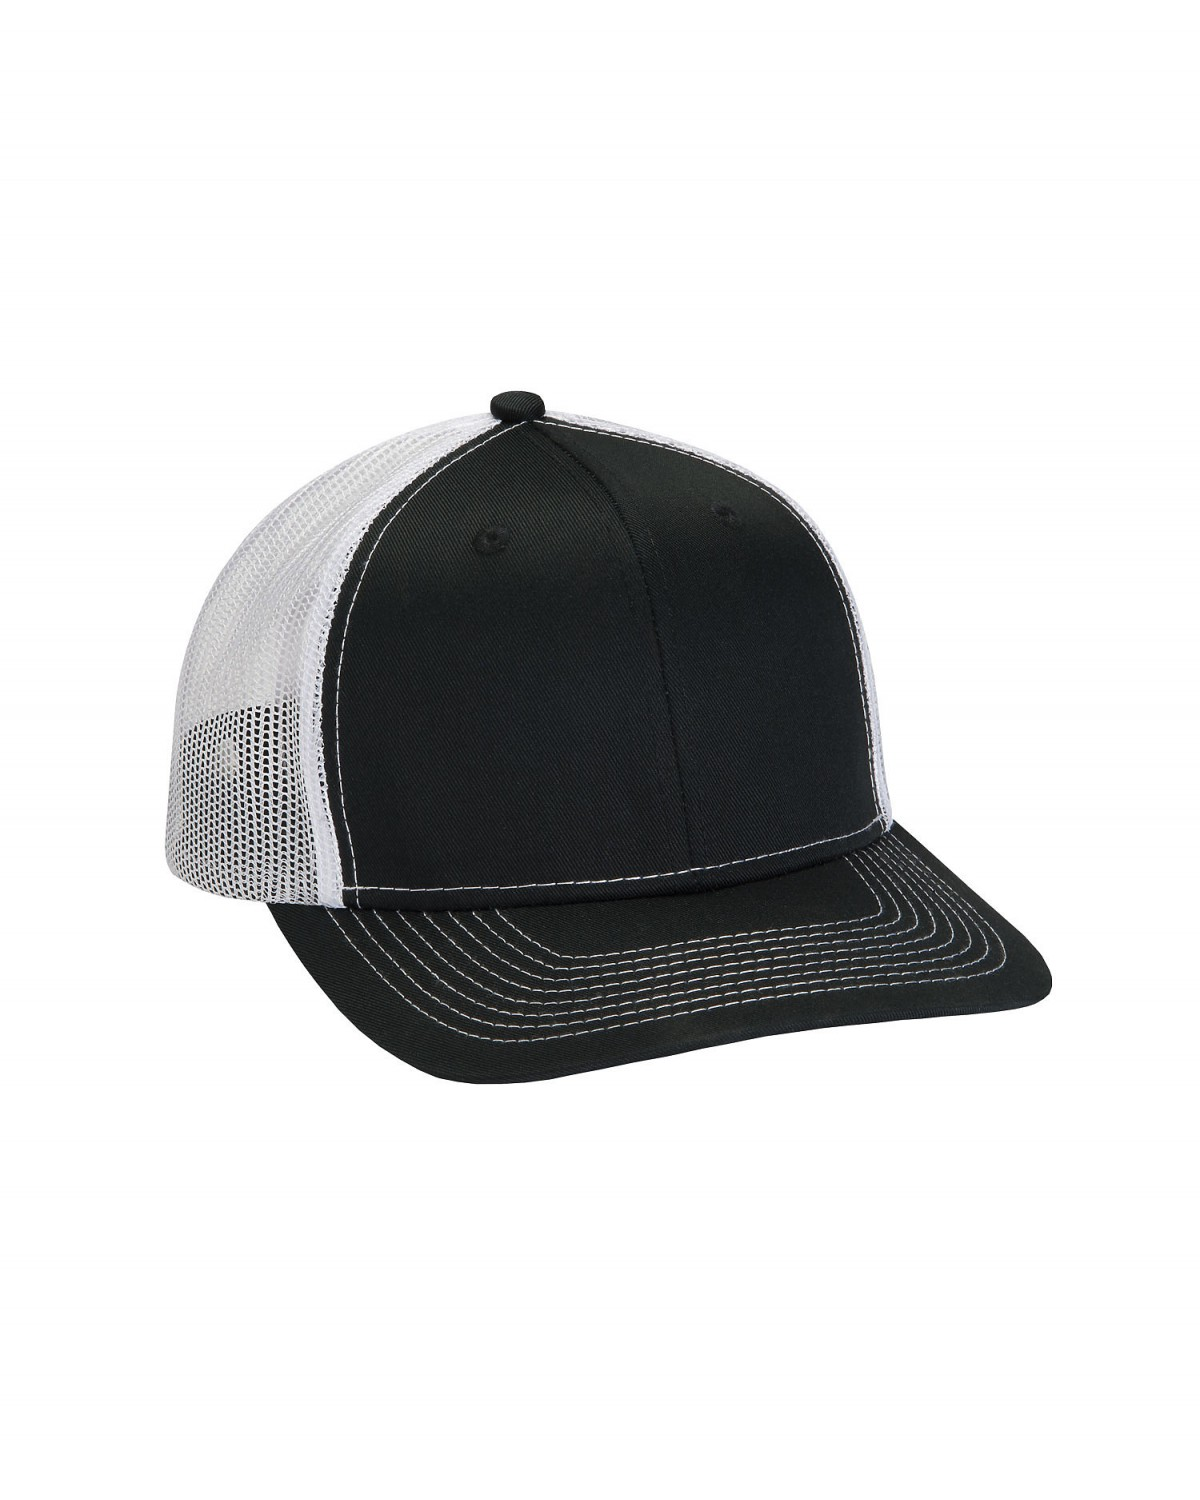 BG4117 Badger Sport GRAPHITE/WHITE